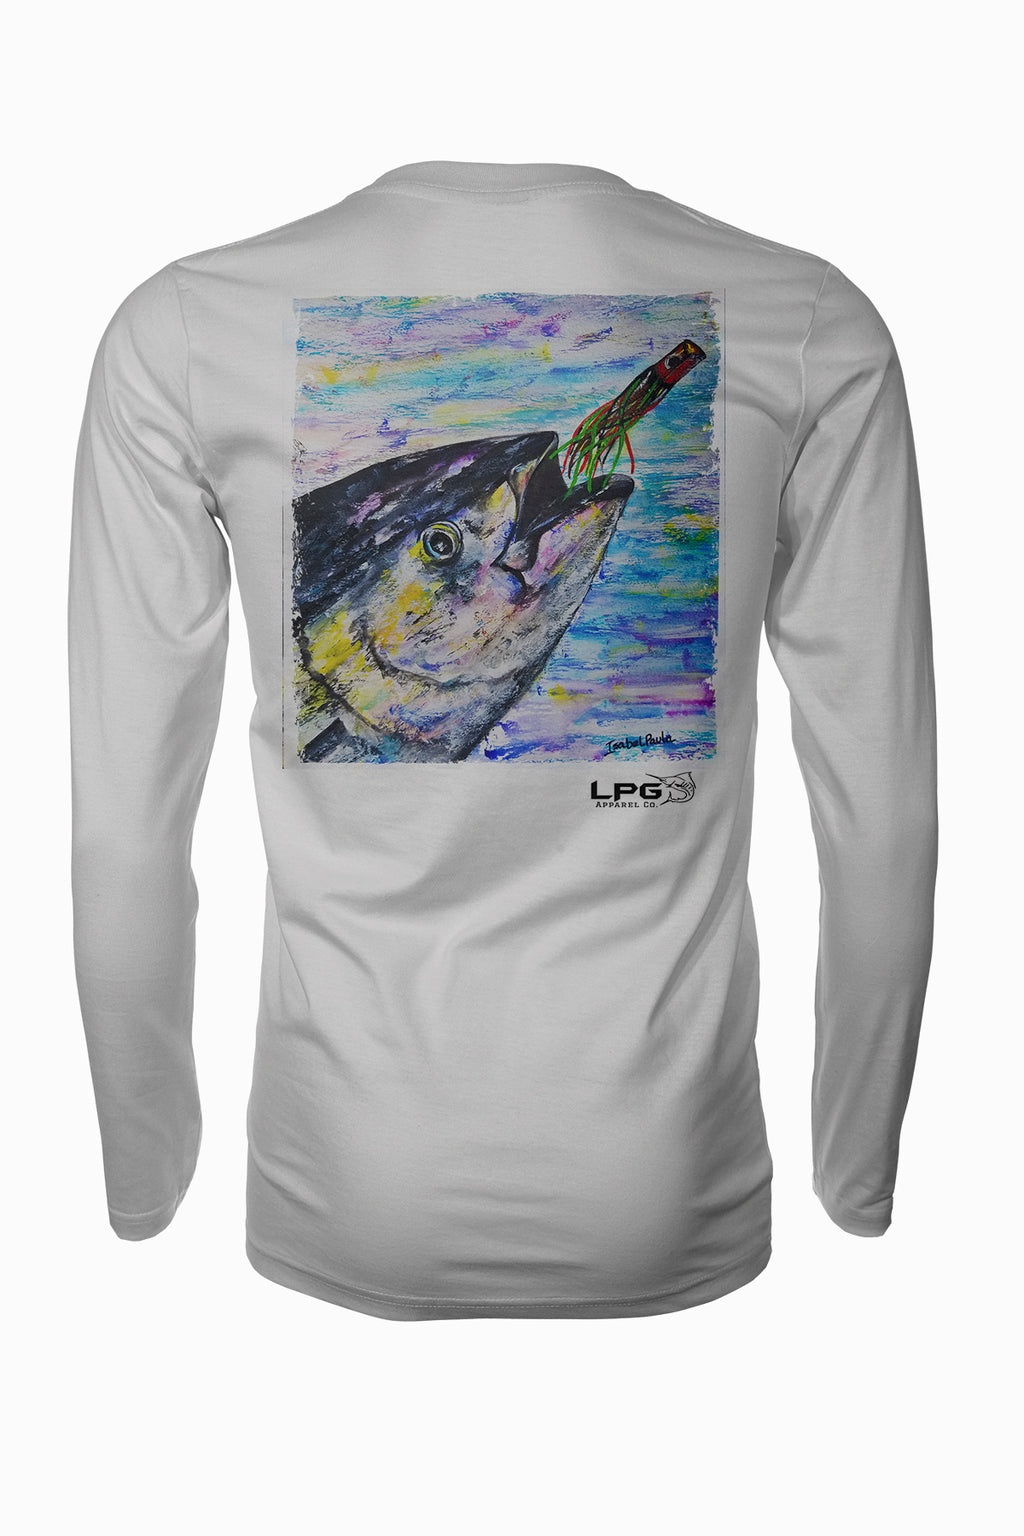 LPG Apparel Co. Yellowfin Chase Rash Guard LS Performance UPF 50 Unisex Shirt